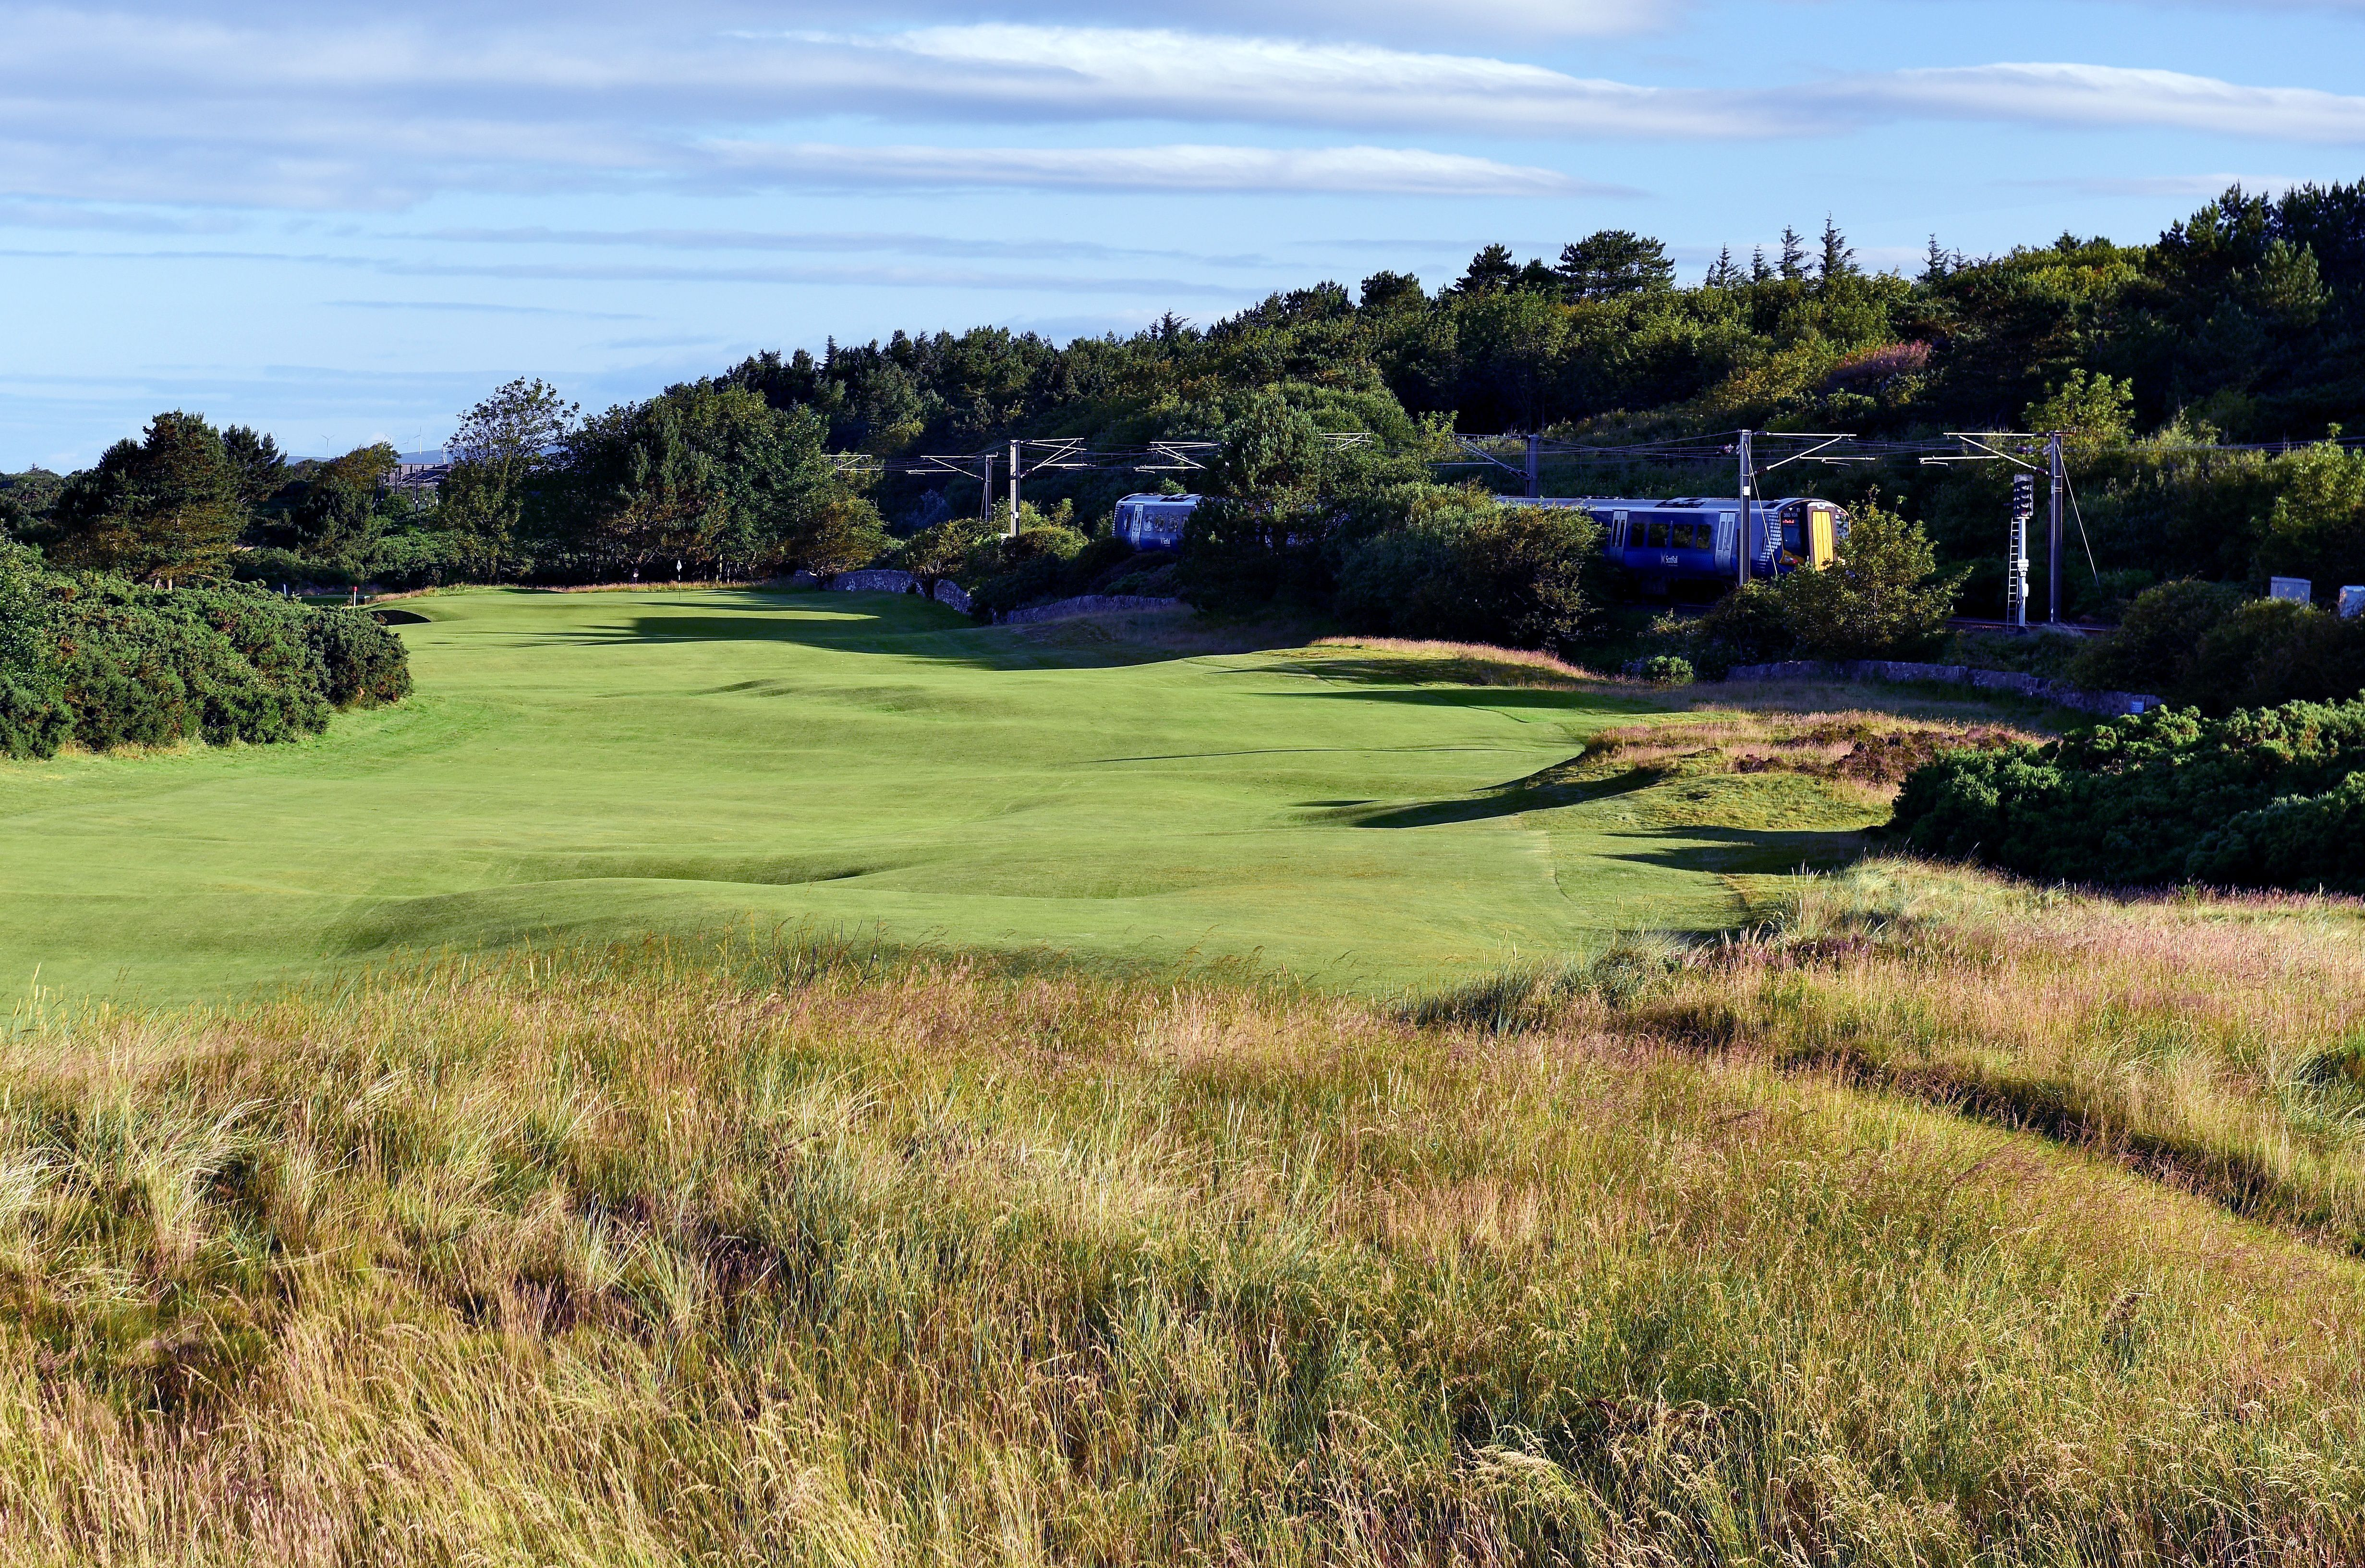 The 490 yards par 4, 11th hole 'The Railway' on the Old Course at Royal Troon